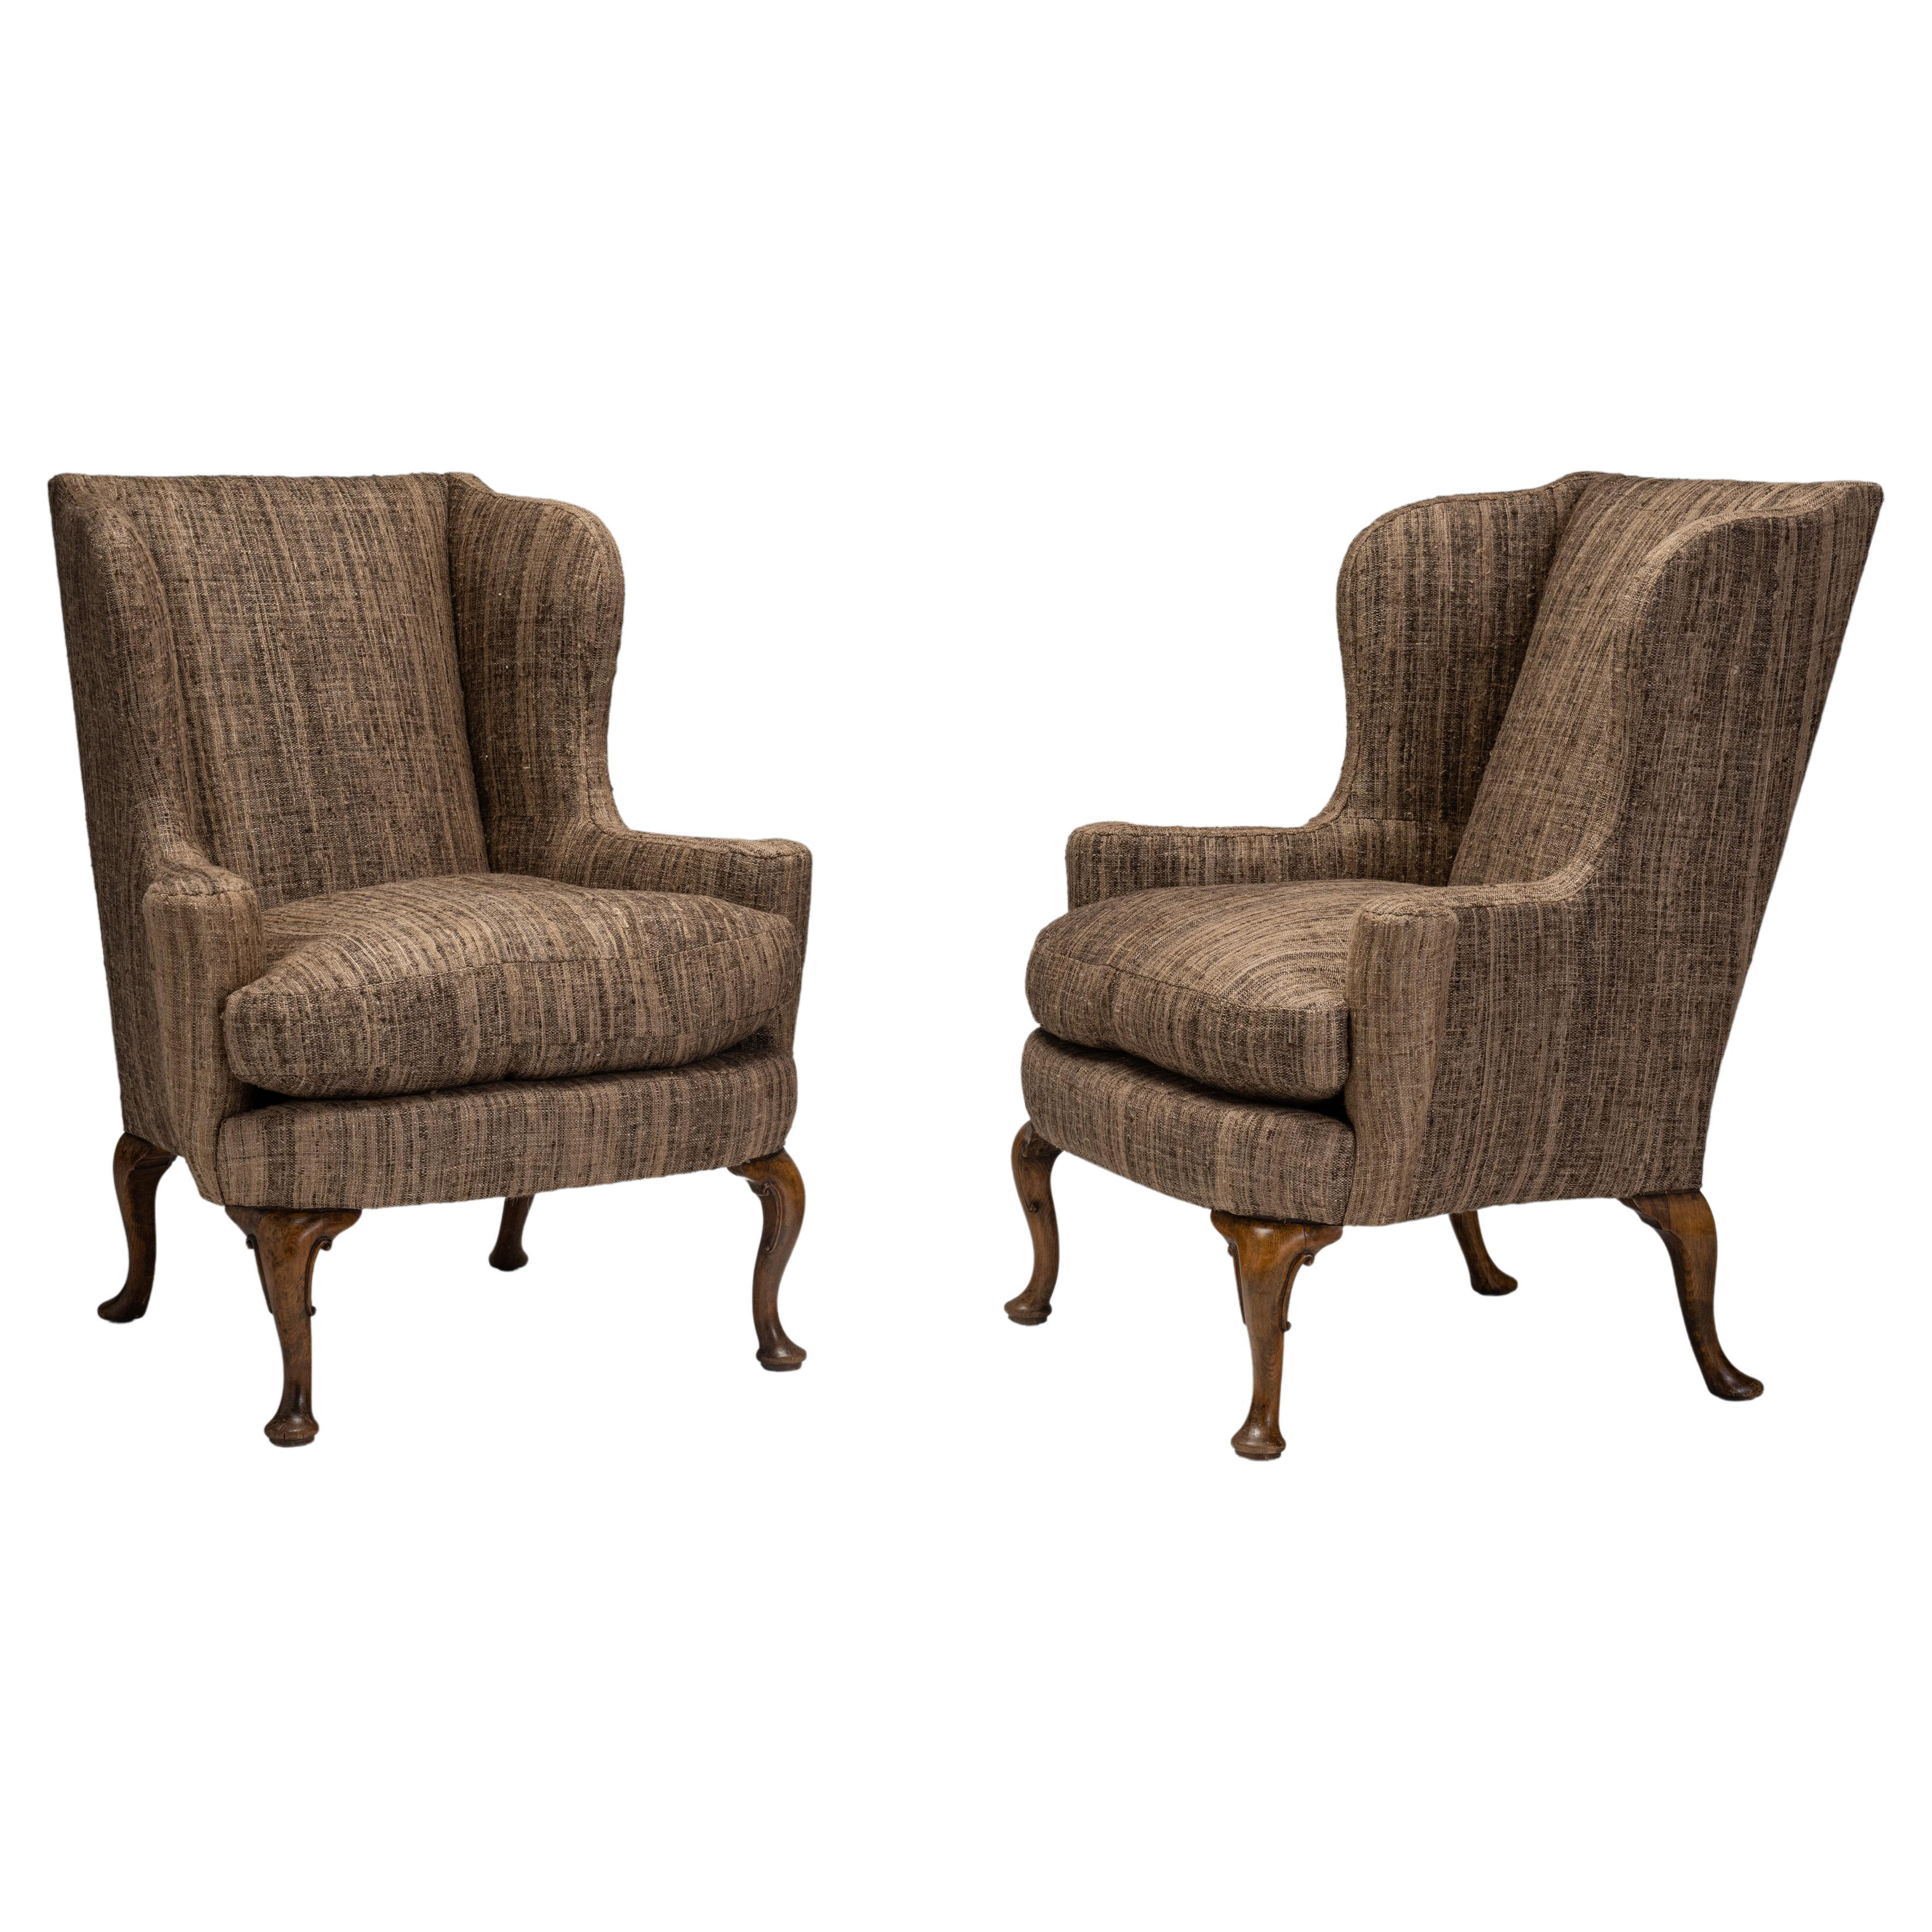 Pair of Wing Armchairs, England, Circa 1930